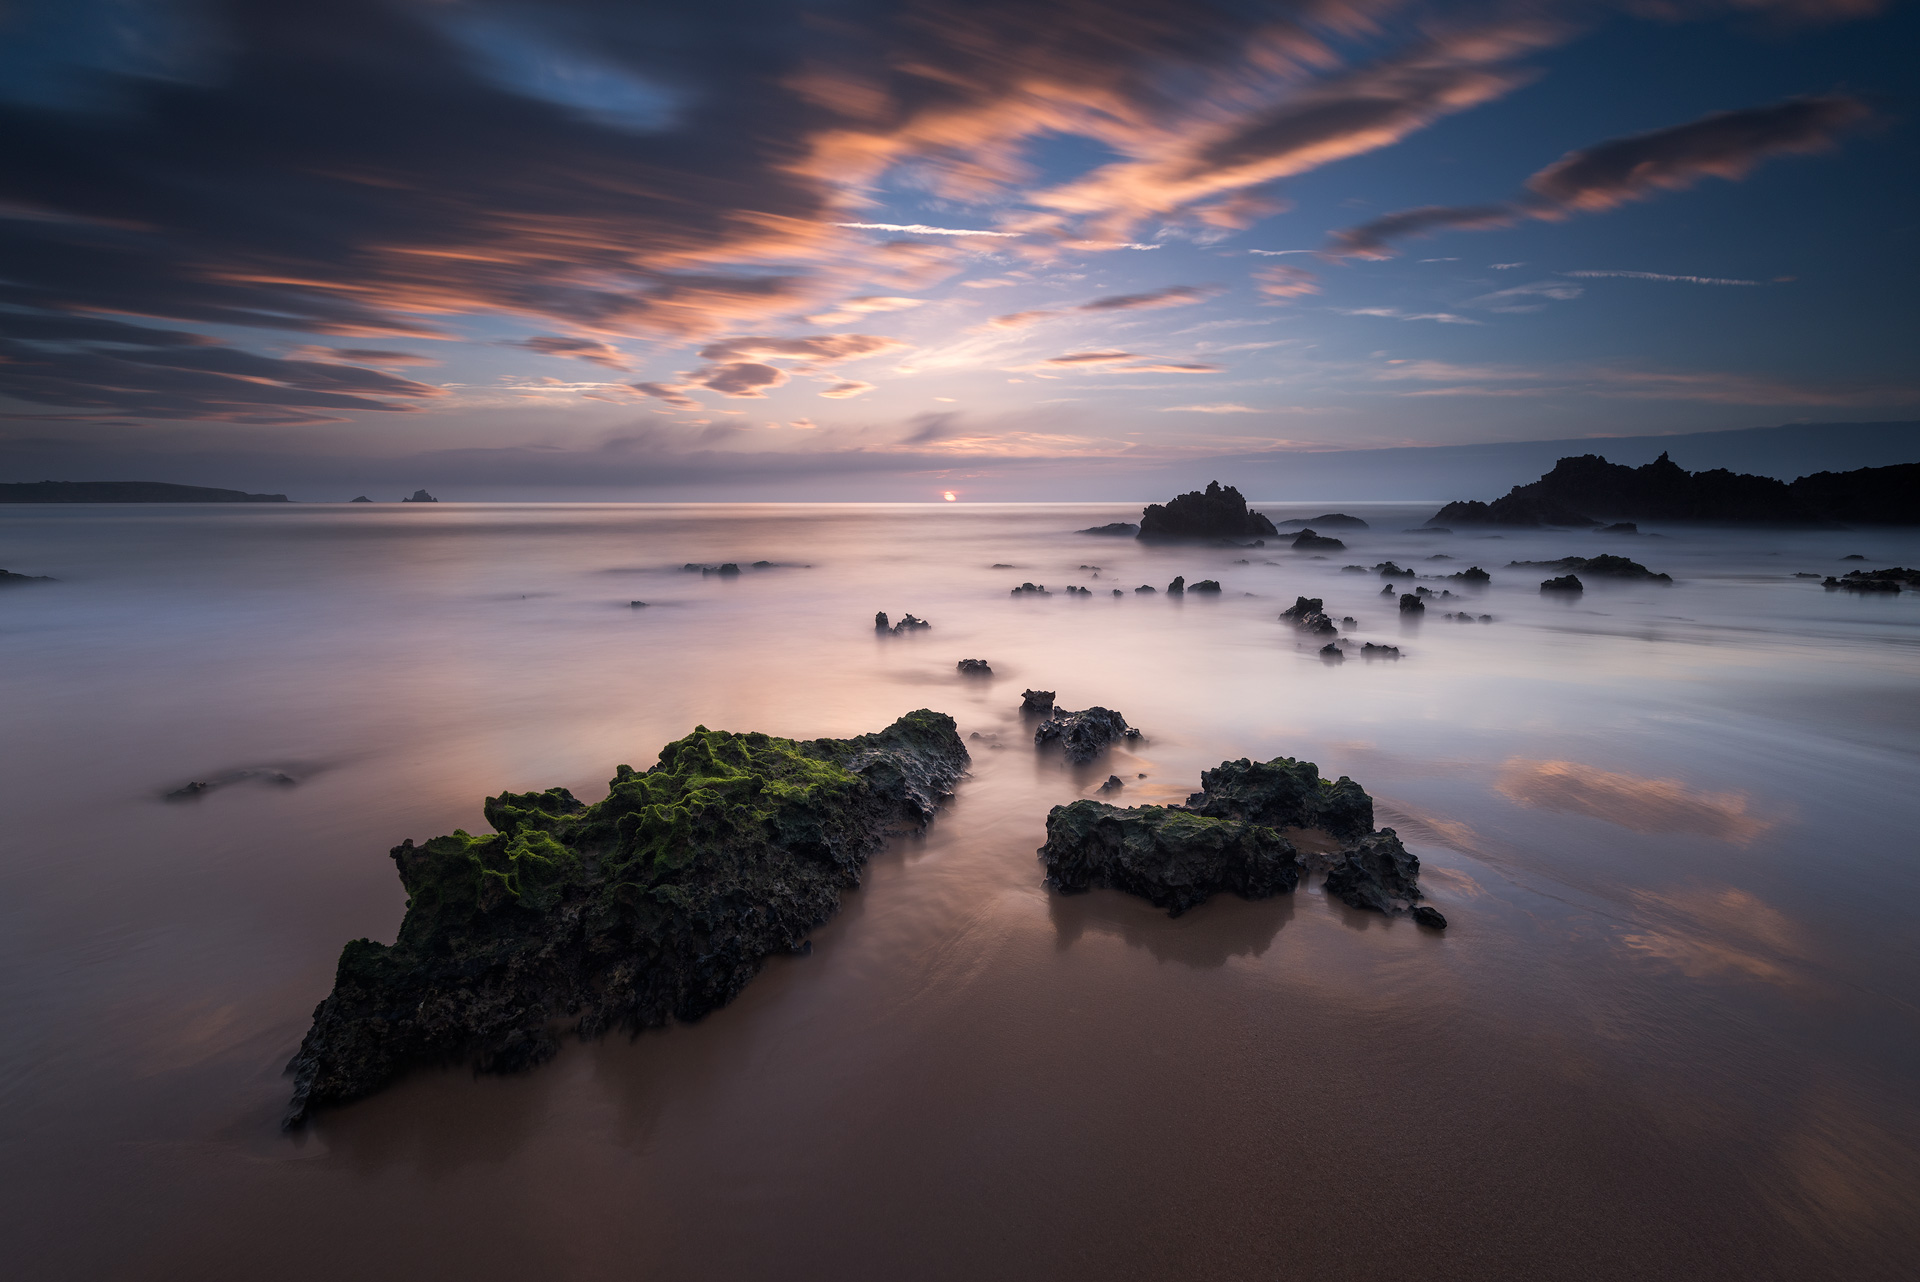 Seascape with rocks in the foreground